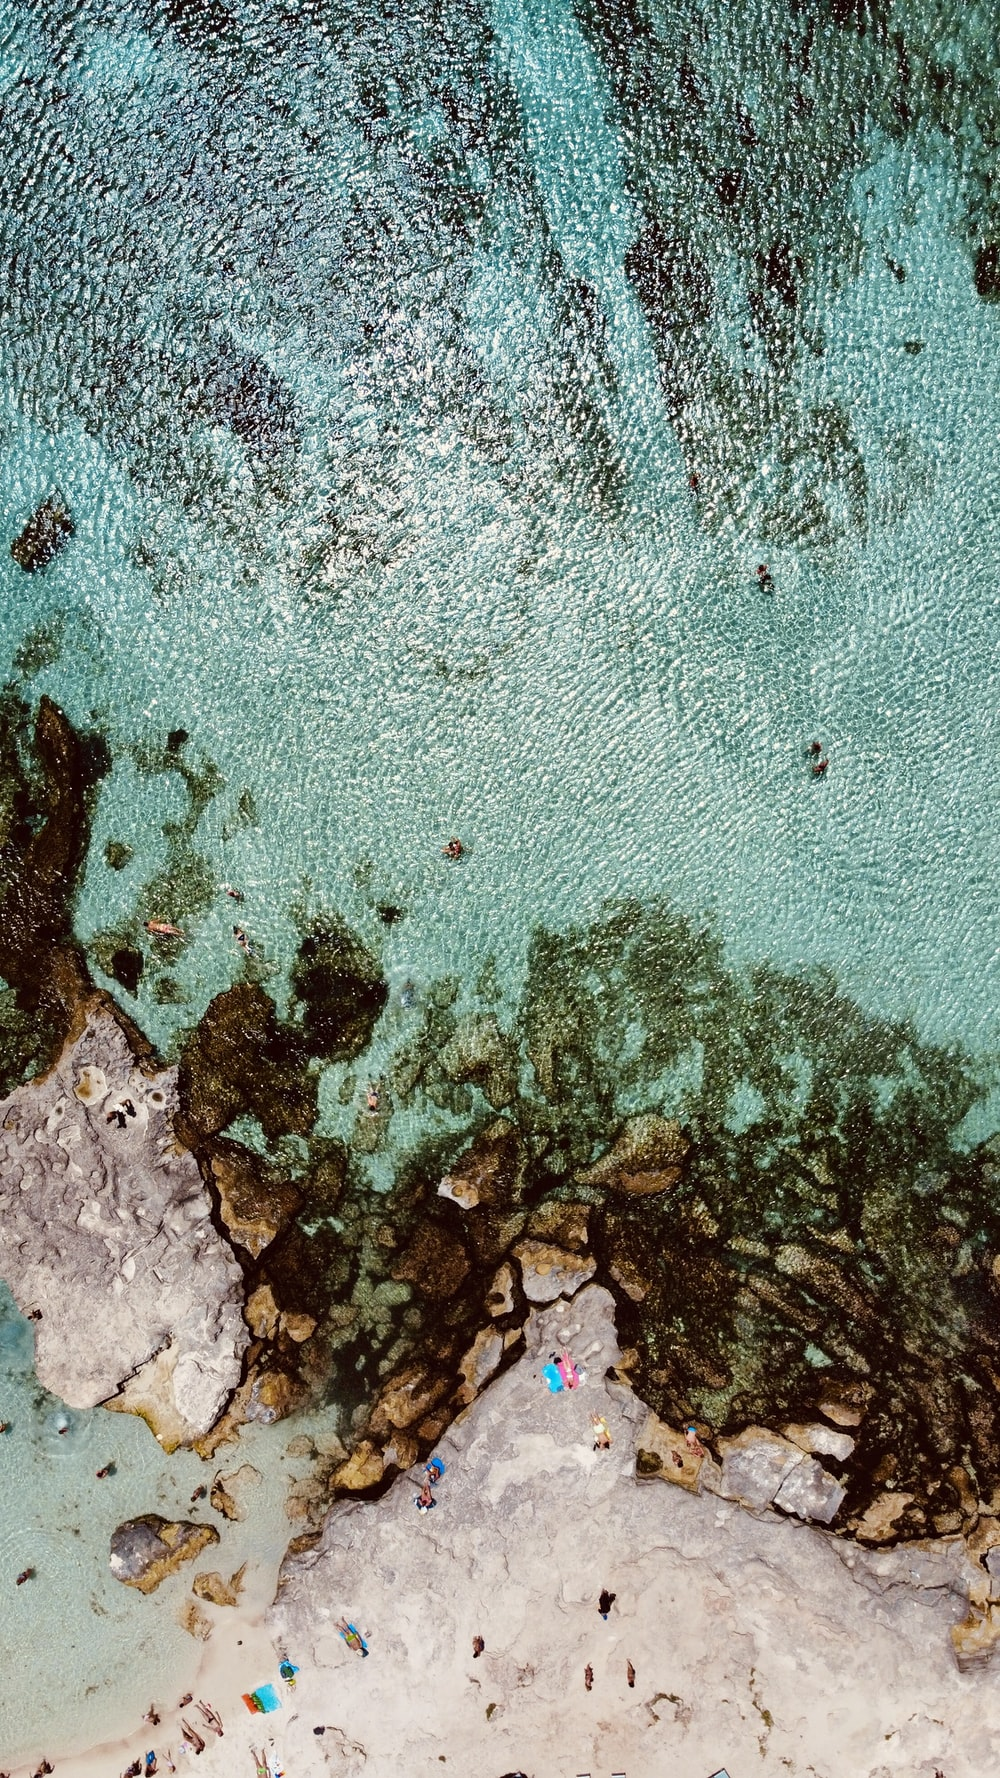 aerial view of body of water